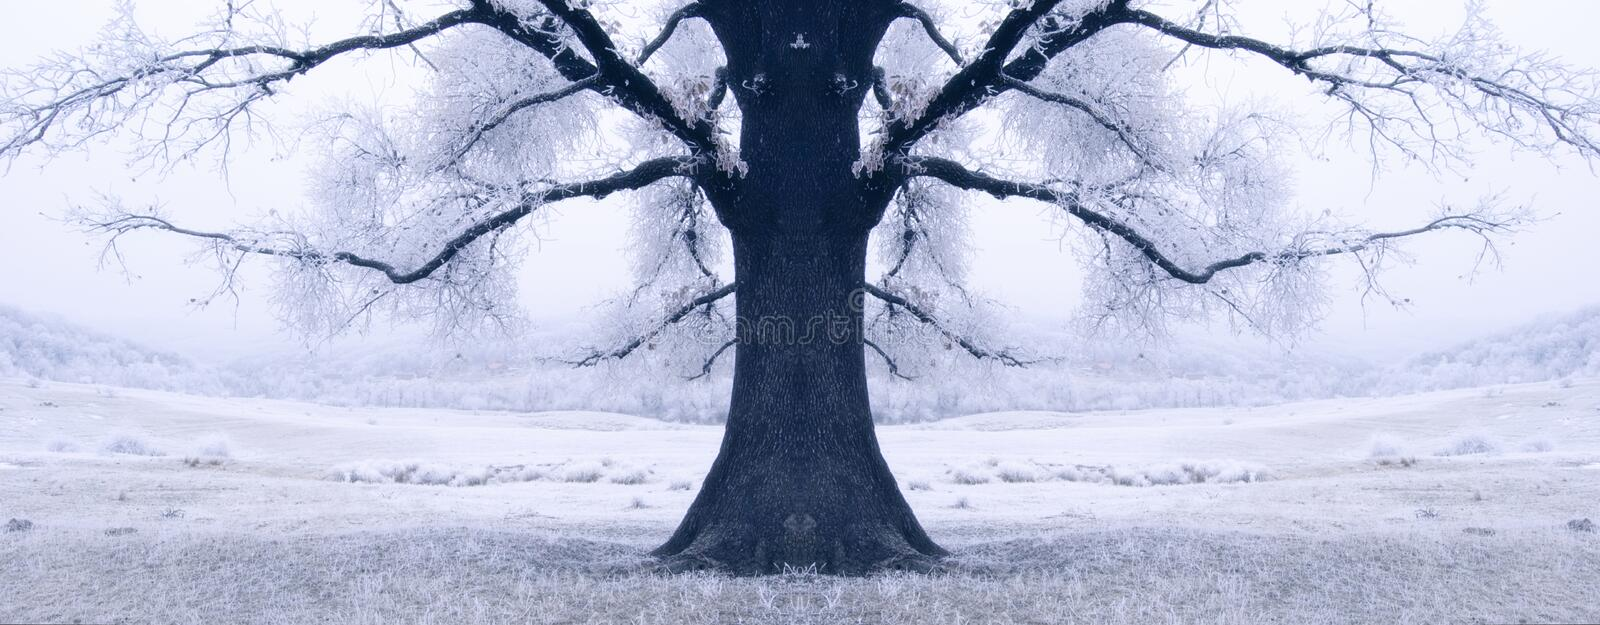 Black tree surrounded by snow in winter royalty free stock photo